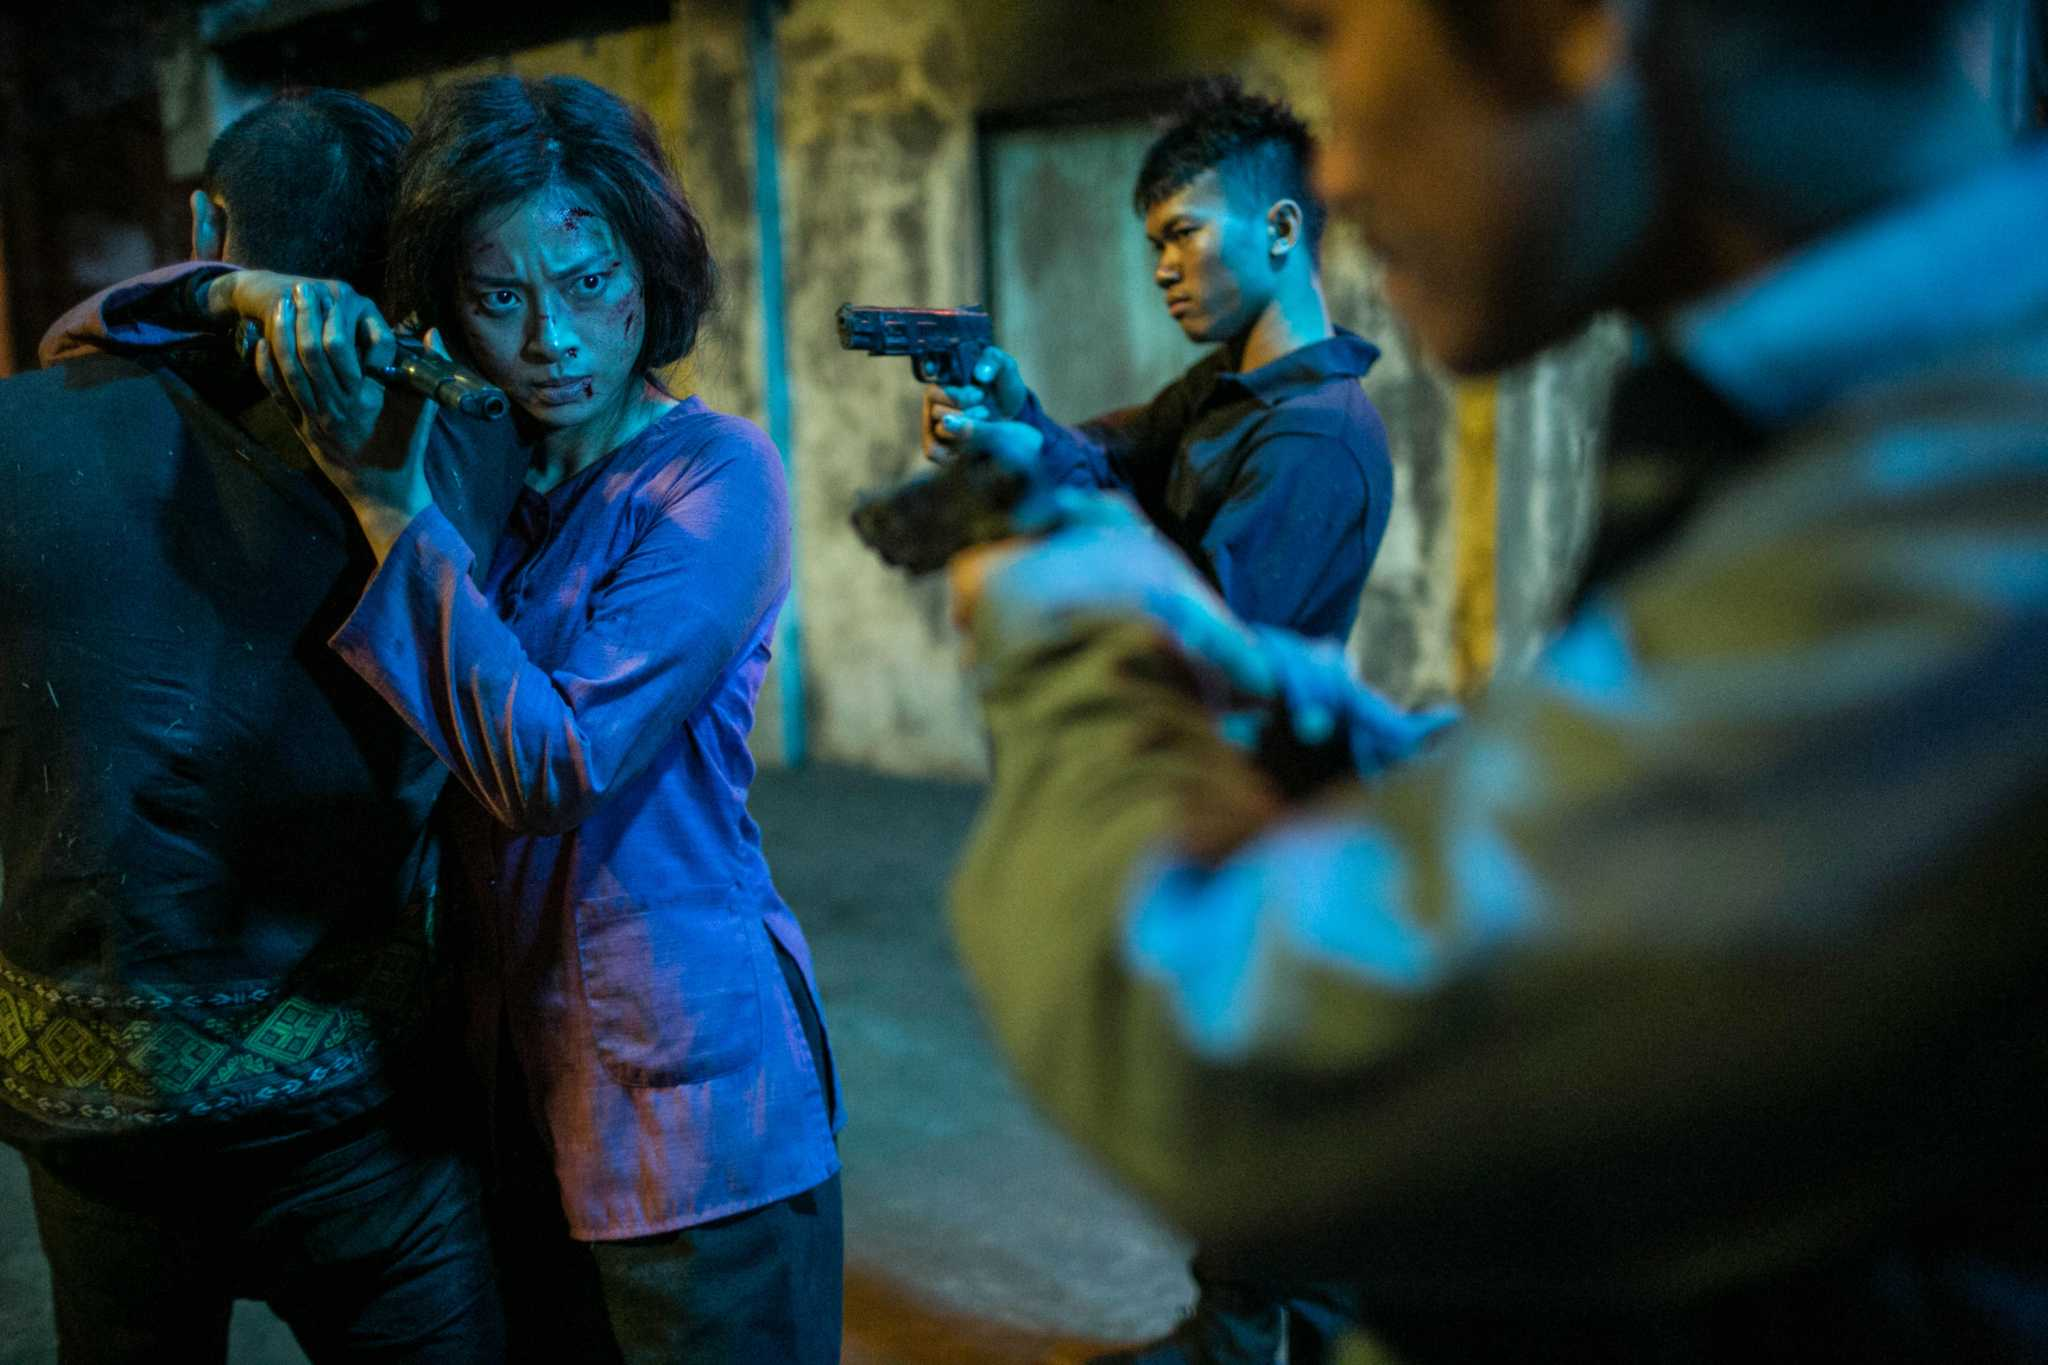 Vietnamese action film 'Furie' a swift kick in the face